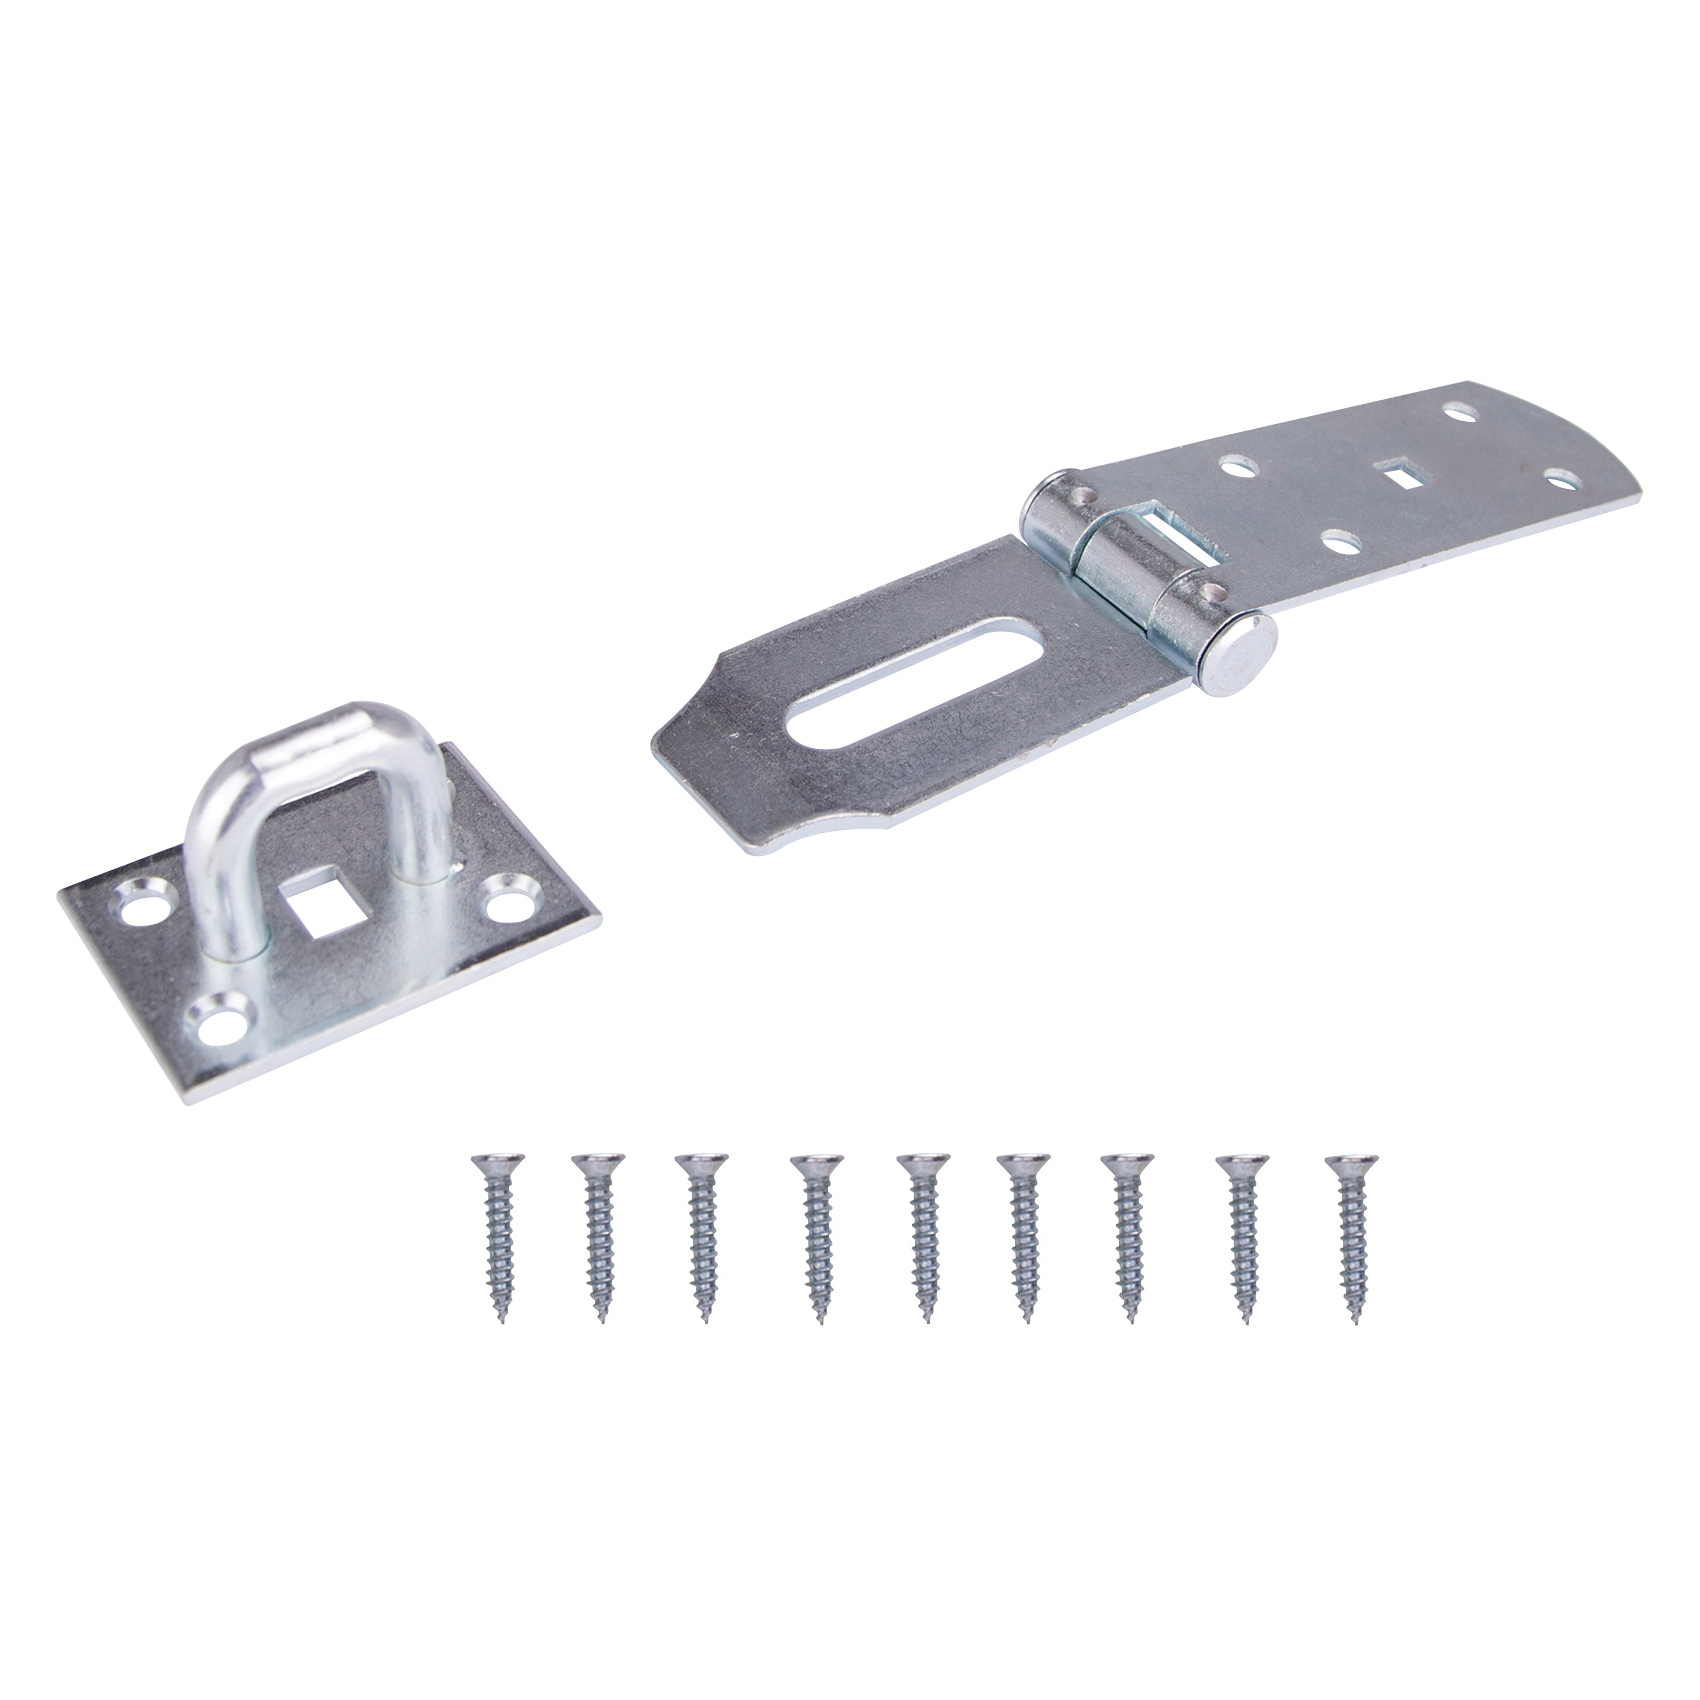 Picture of ProSource LR-137-BC3L-PS Safety Hasp, 4-1/2 in L, Steel, Zinc